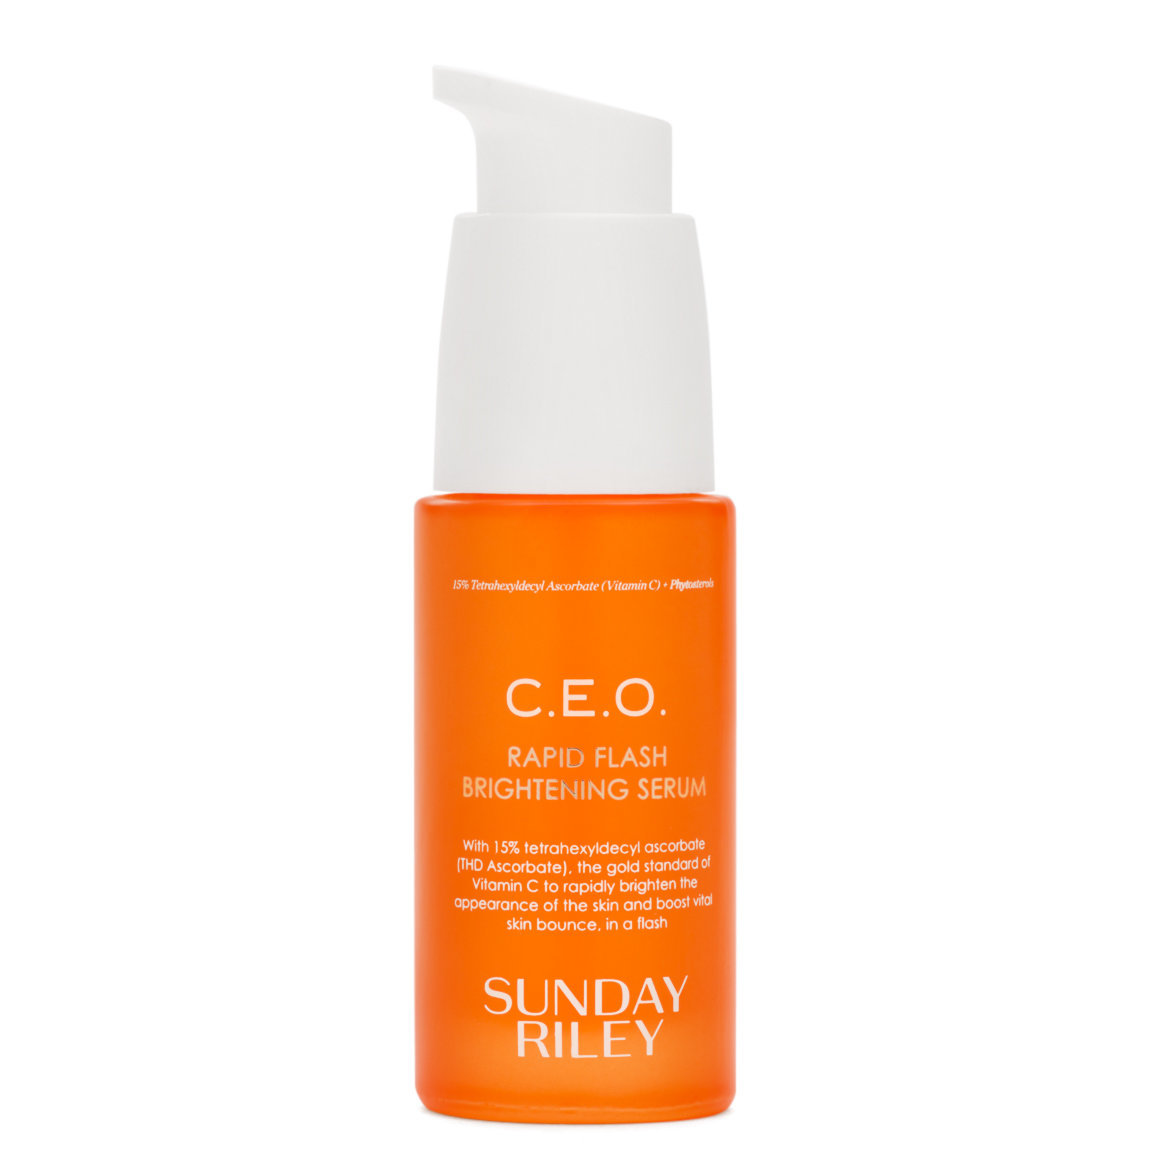 Sunday Riley C.E.O. Rapid Flash Brightening Serum product smear.